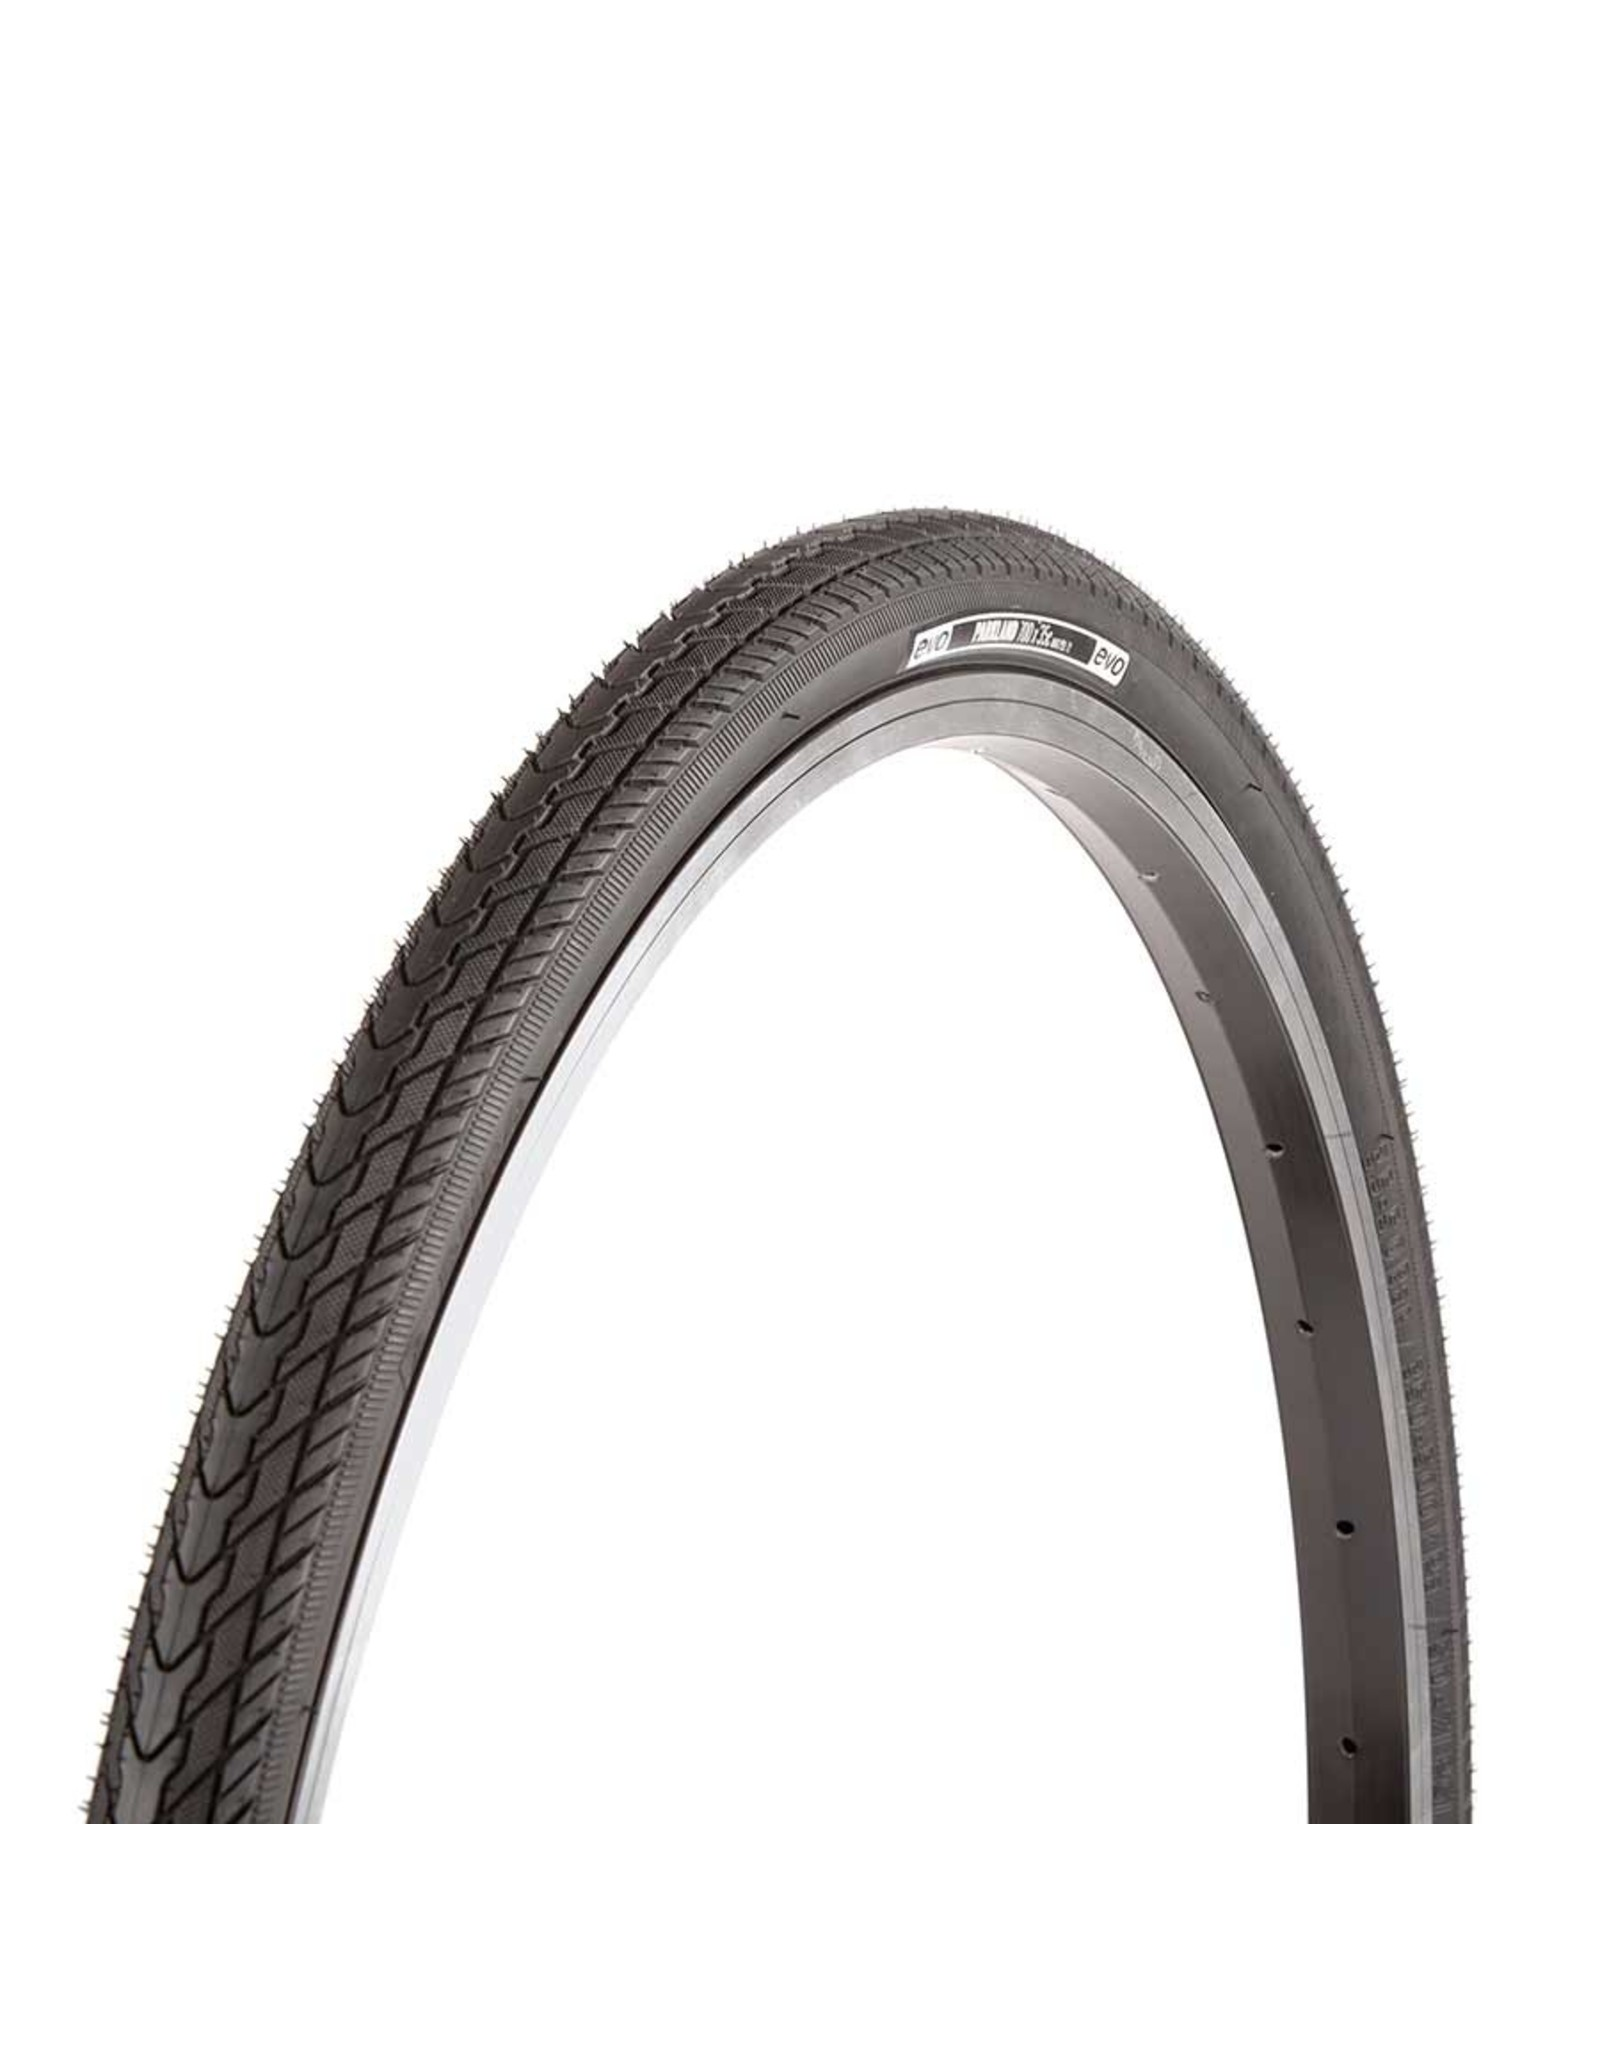 EVO, Parkland, Tire, 700x35C, Wire, Clincher, Black